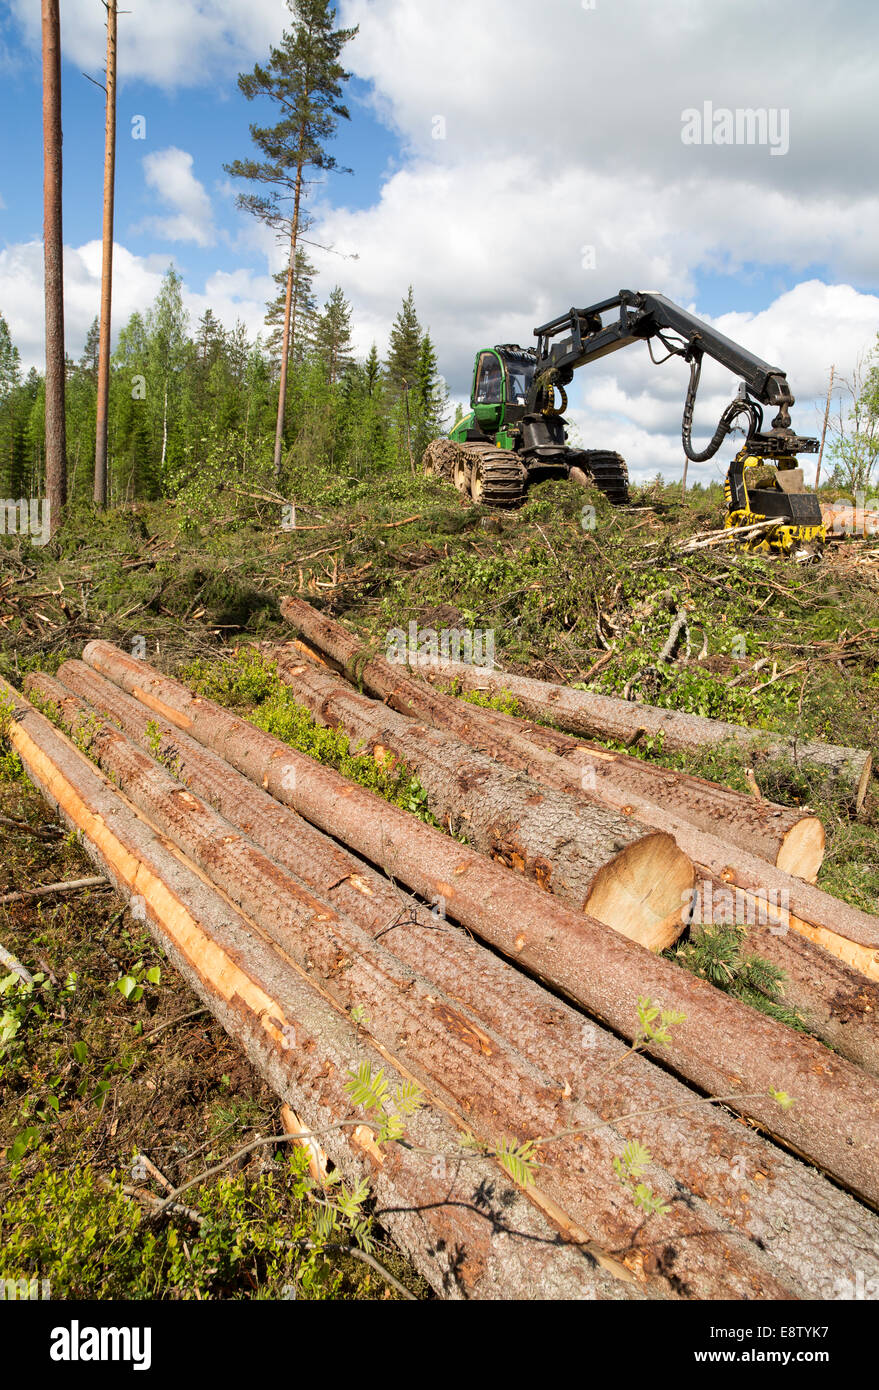 John Deere 1170E forest harvester and logs at clear cutting area , Finland - Stock Image